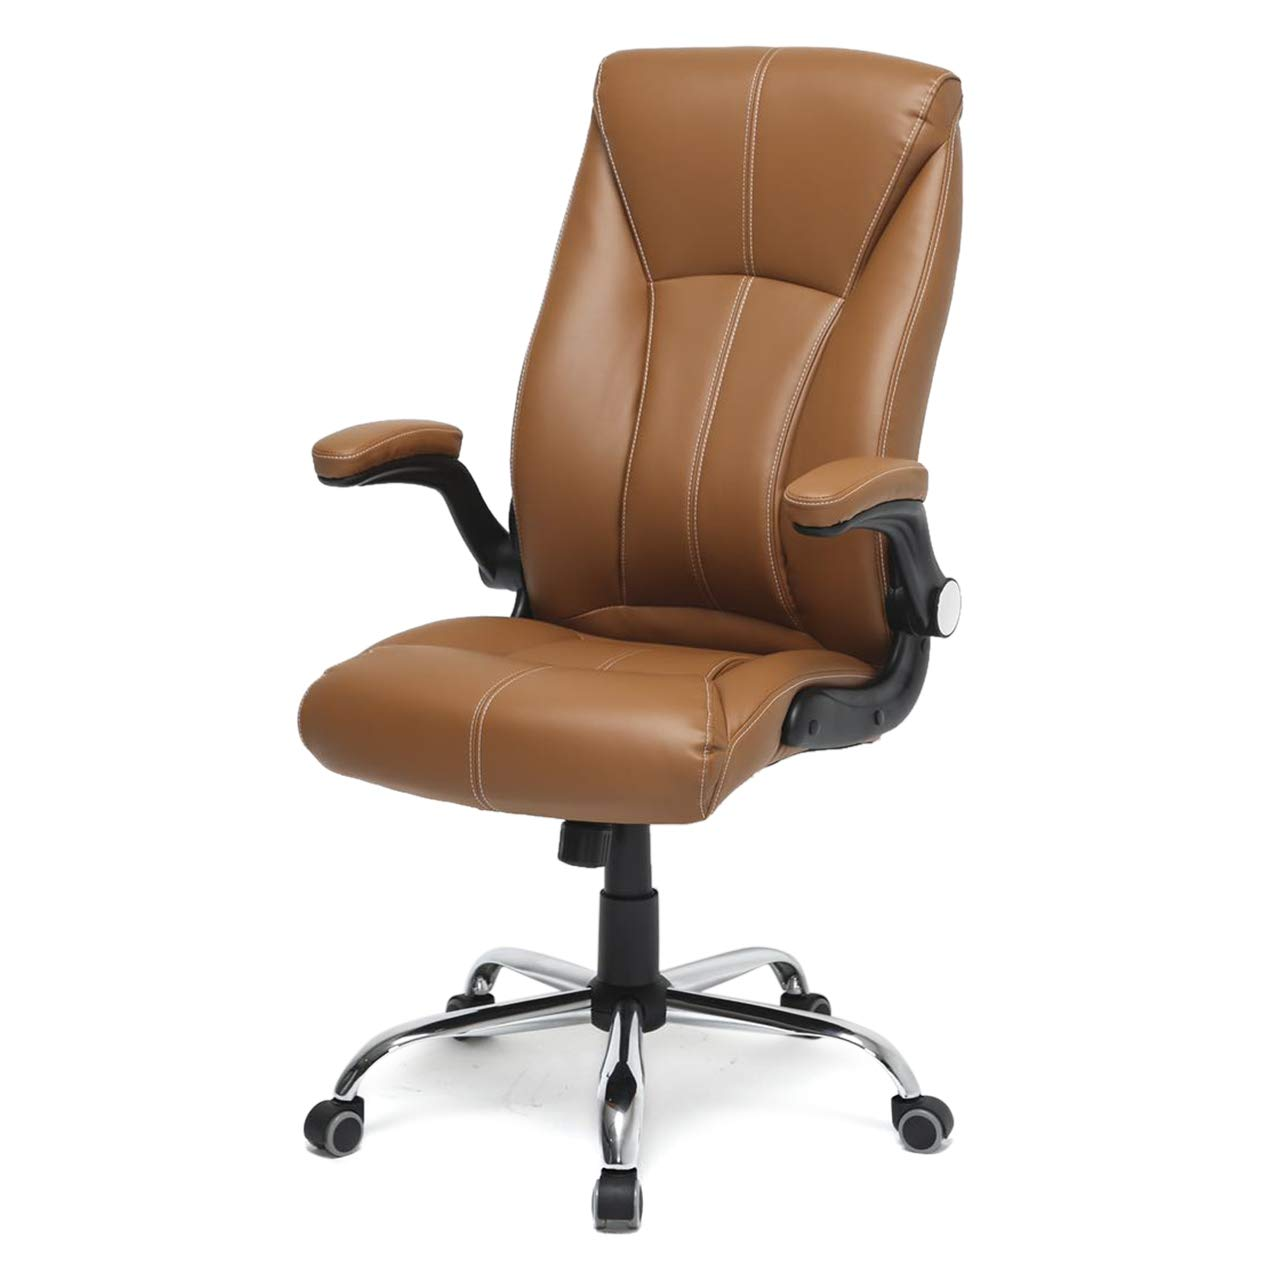 AVION Customer Chair Latest item Nail Salon Capp Manicure Max 62% OFF Clients for